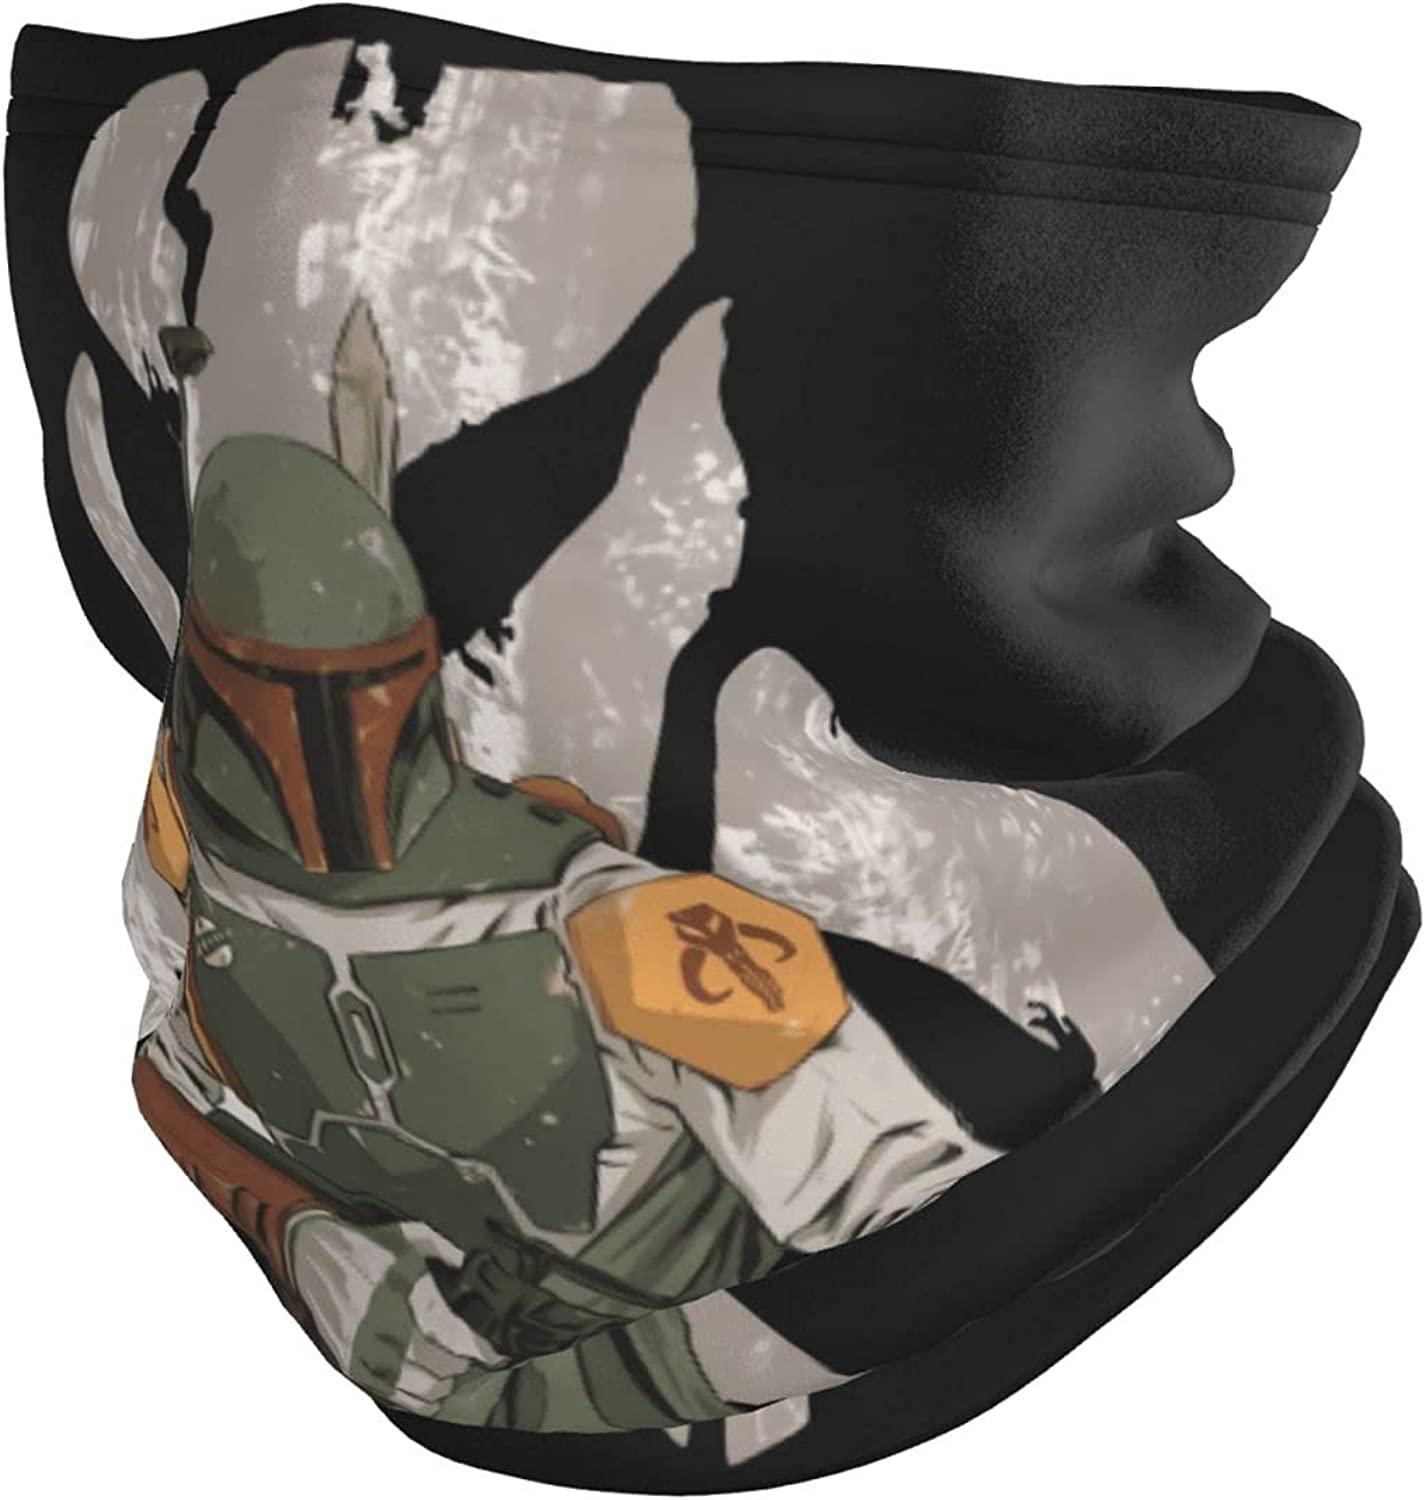 Outdoor Sports Seamless Face Scarf Multifunction Mandalorian Neck Gaiter Face Scarf for Dust Wind Protection Bandana